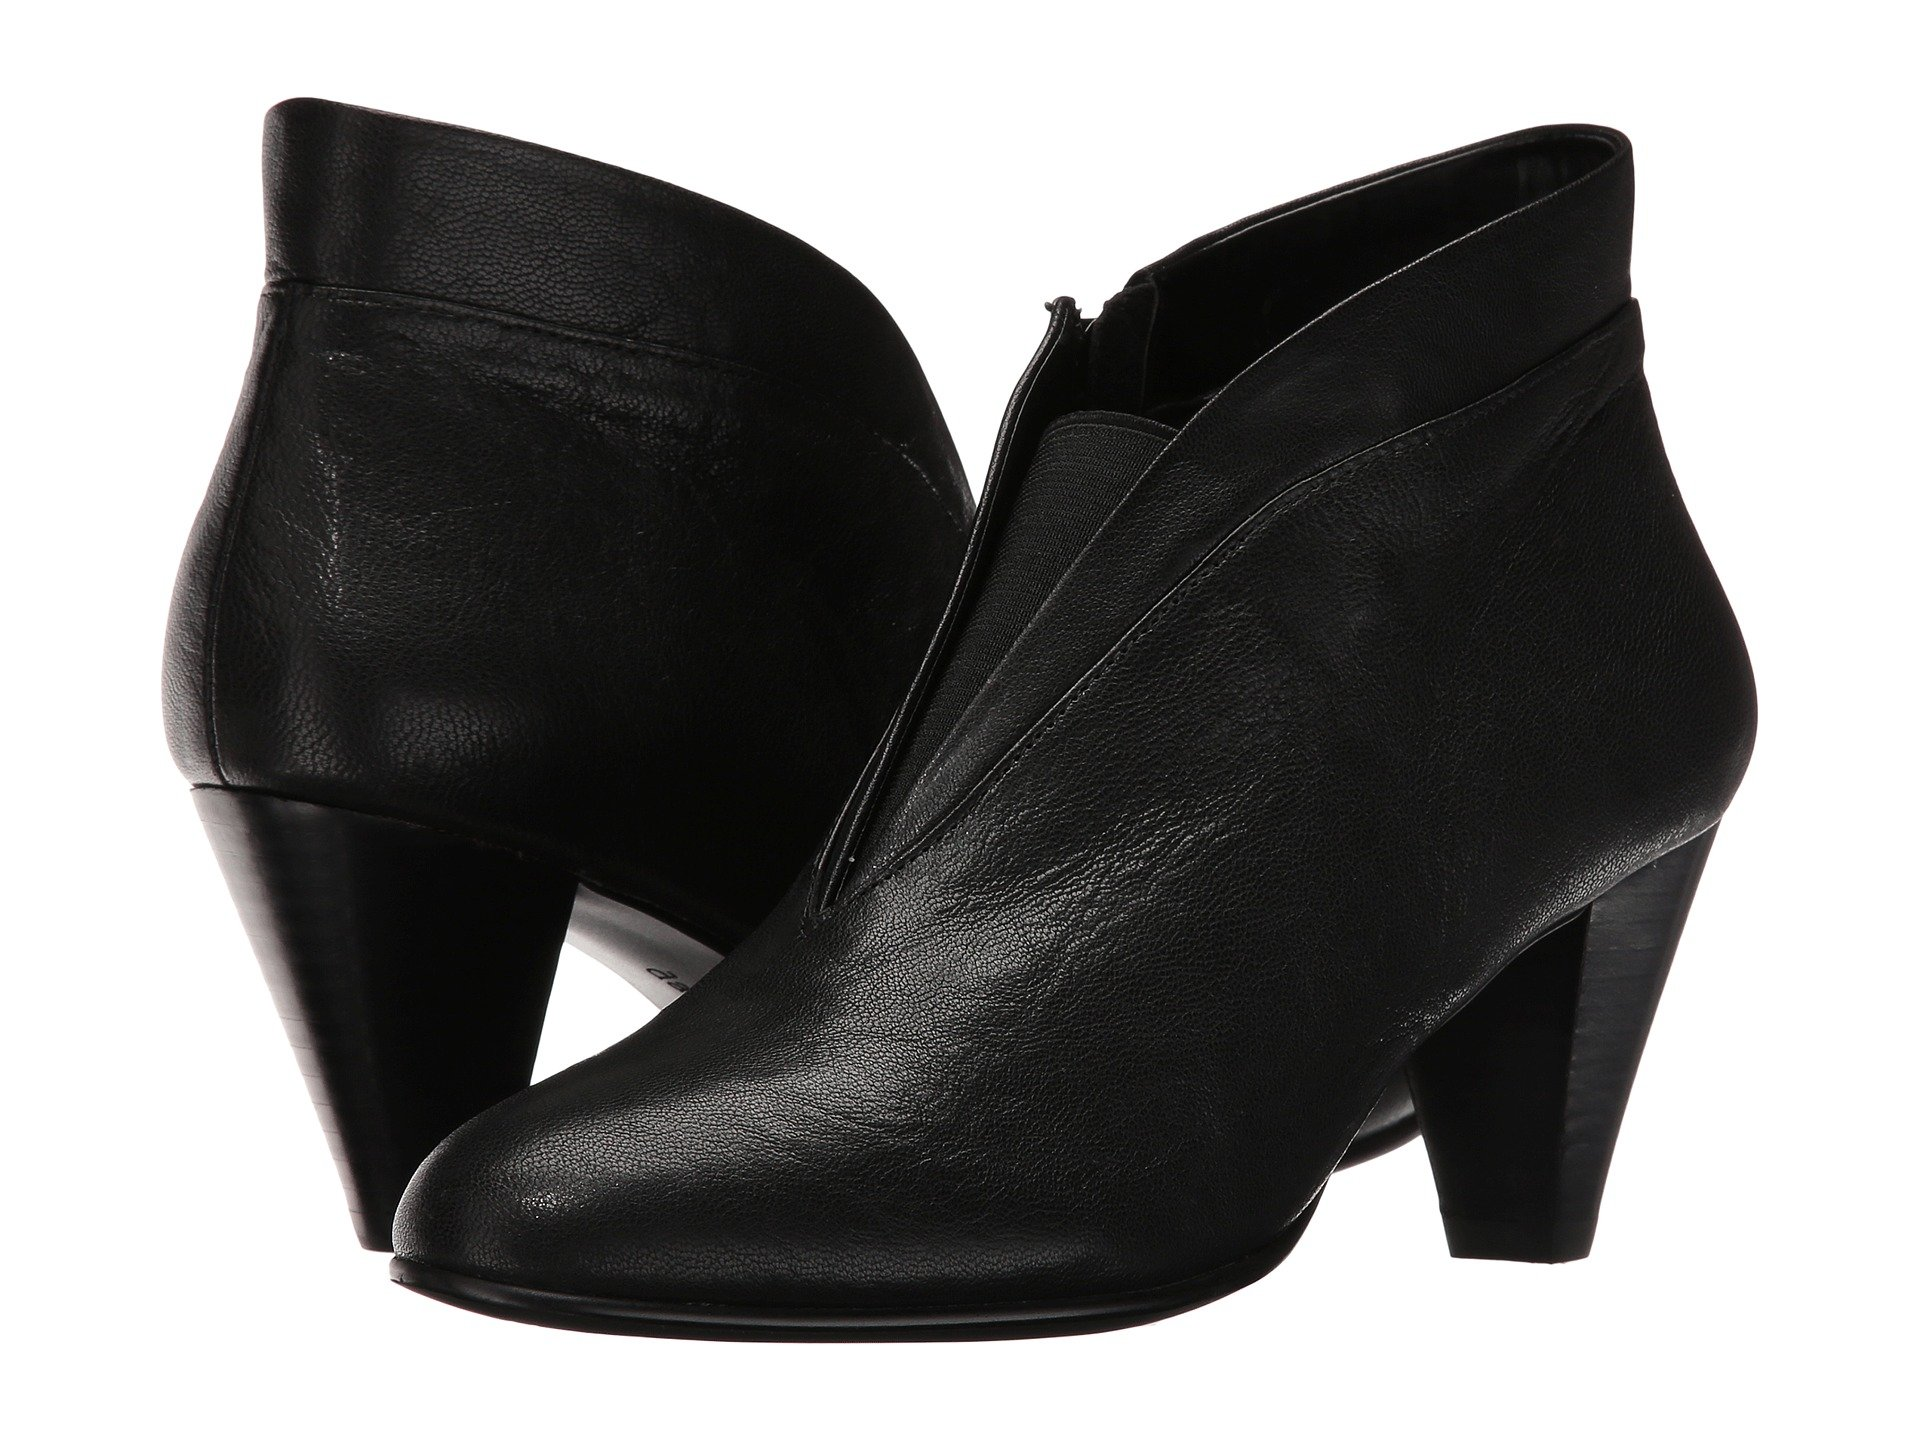 98f047ff2be2 Women s Cone Heel Ankle Boots and Booties + FREE SHIPPING